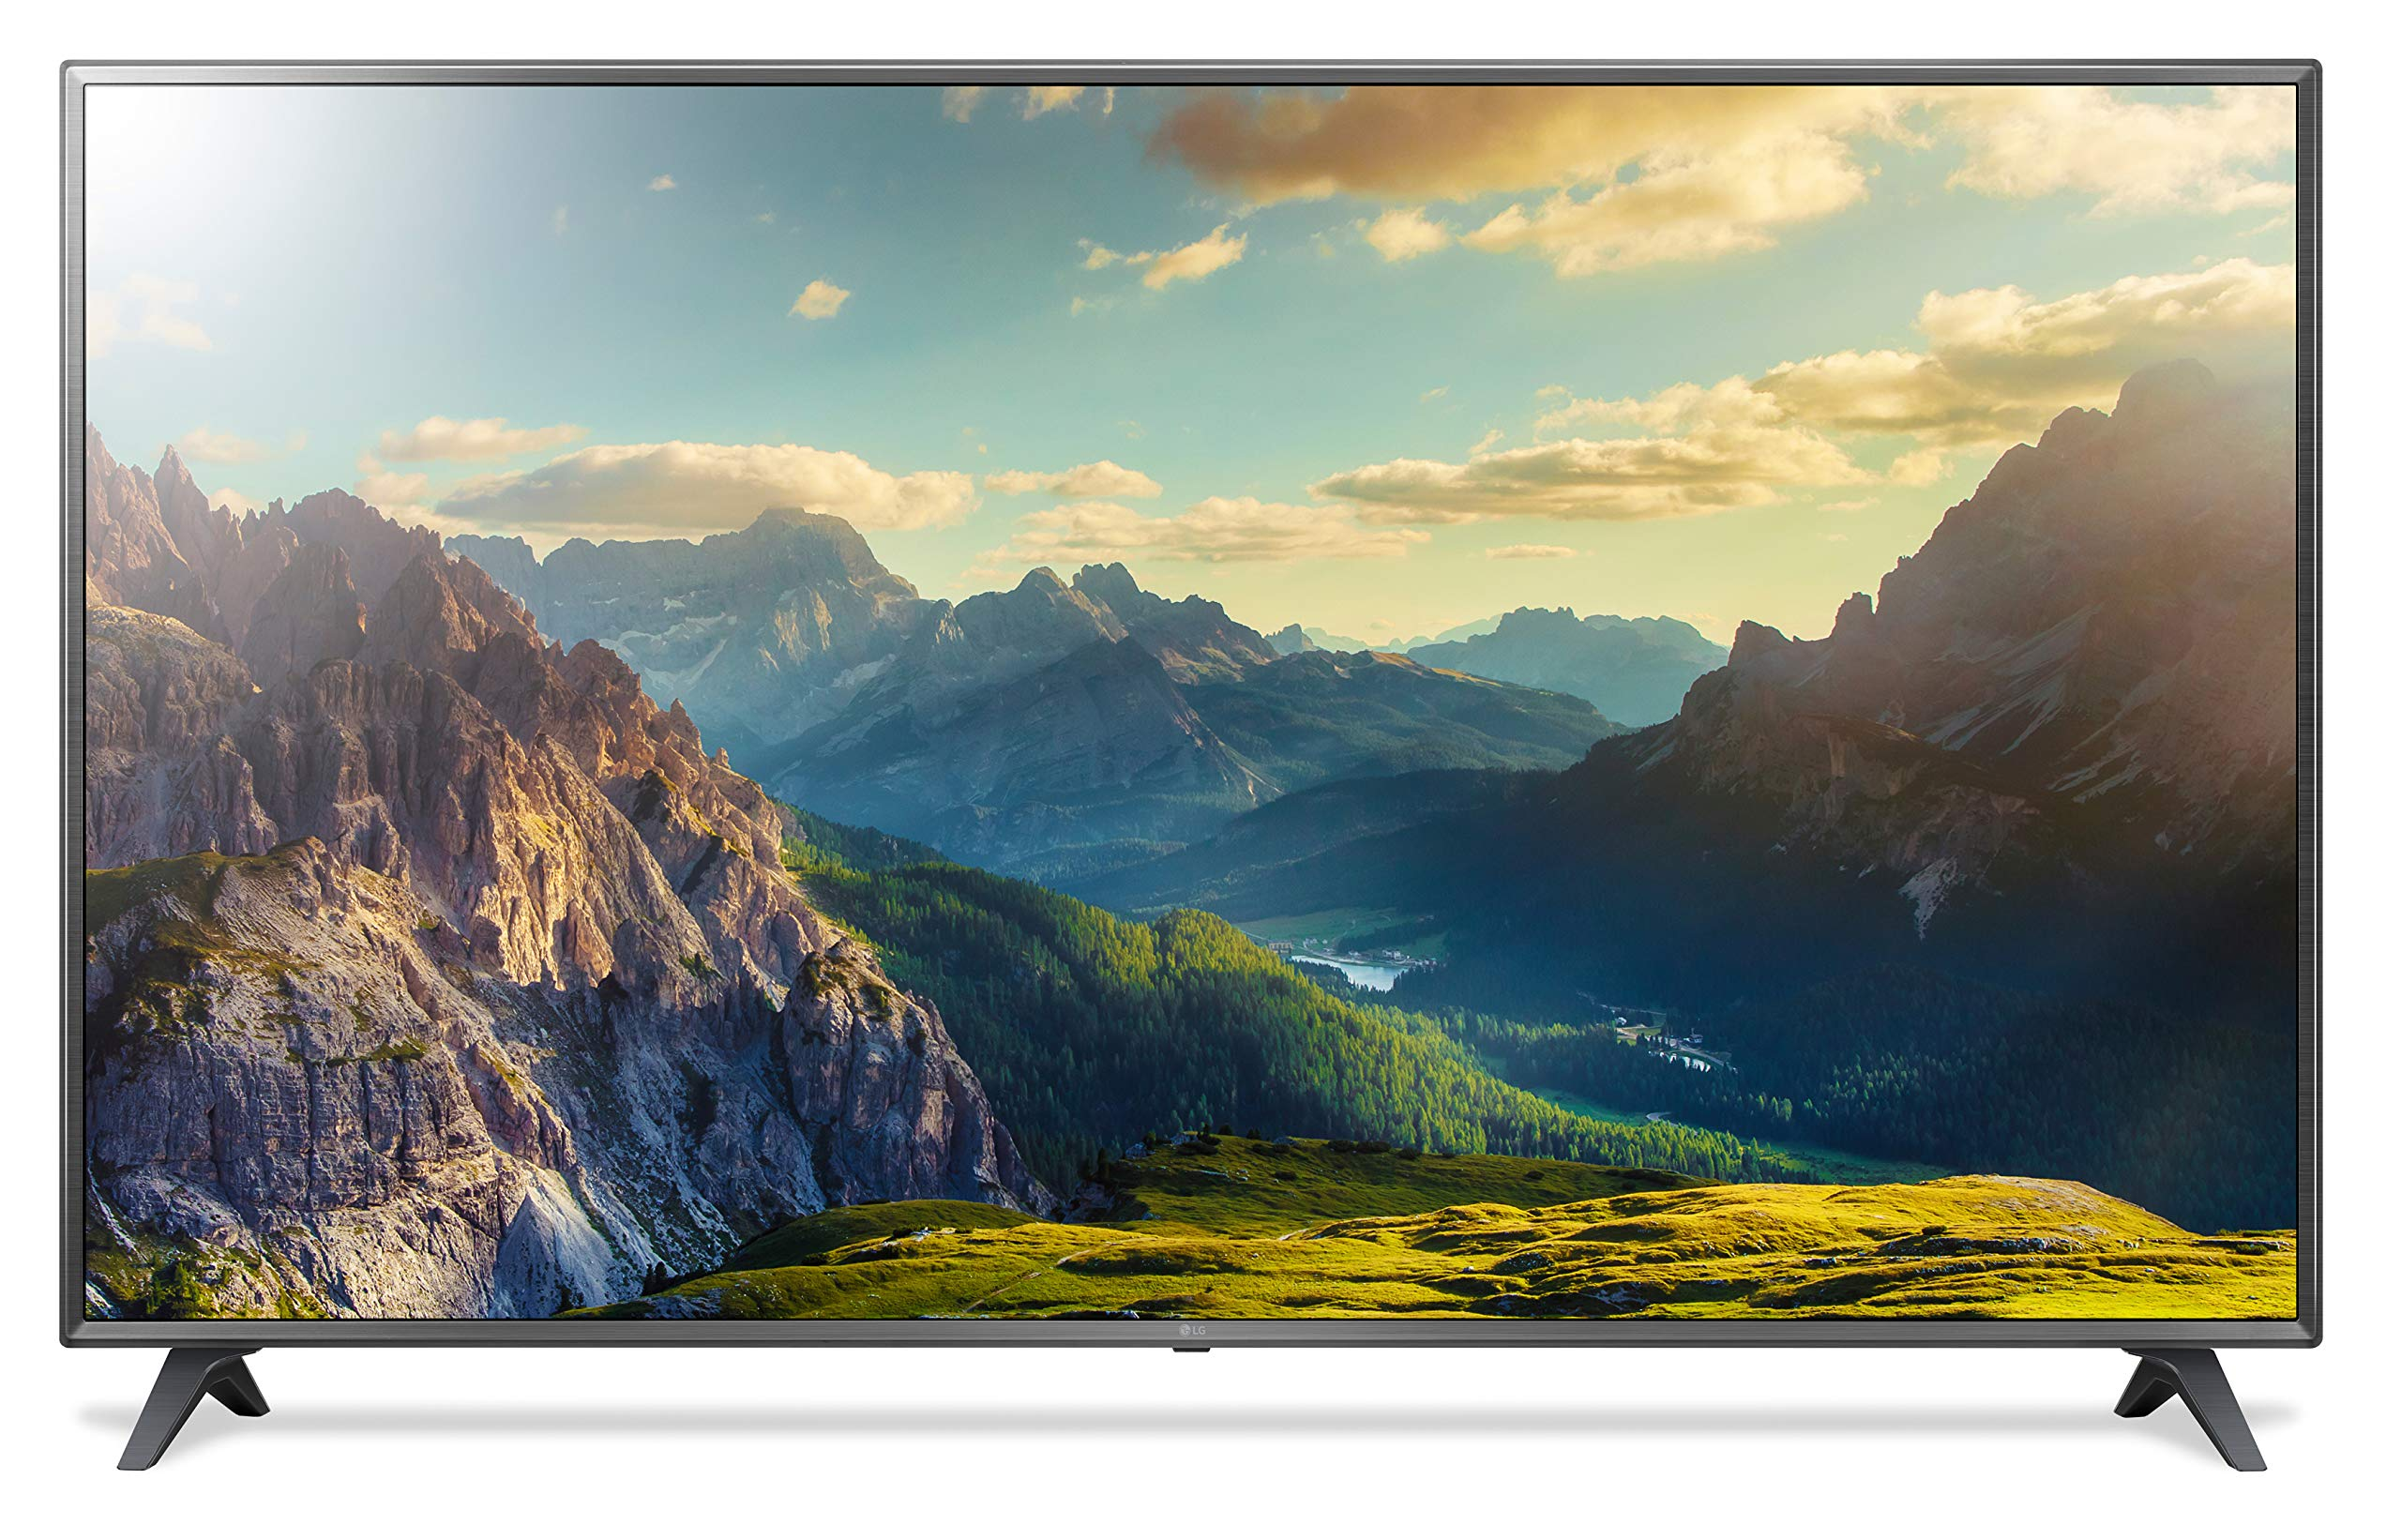 LG 75UK6200 TELEVISOR 75 UHD 4K Smart TV Pantalla IPS: Lg: Amazon.es: Electrónica